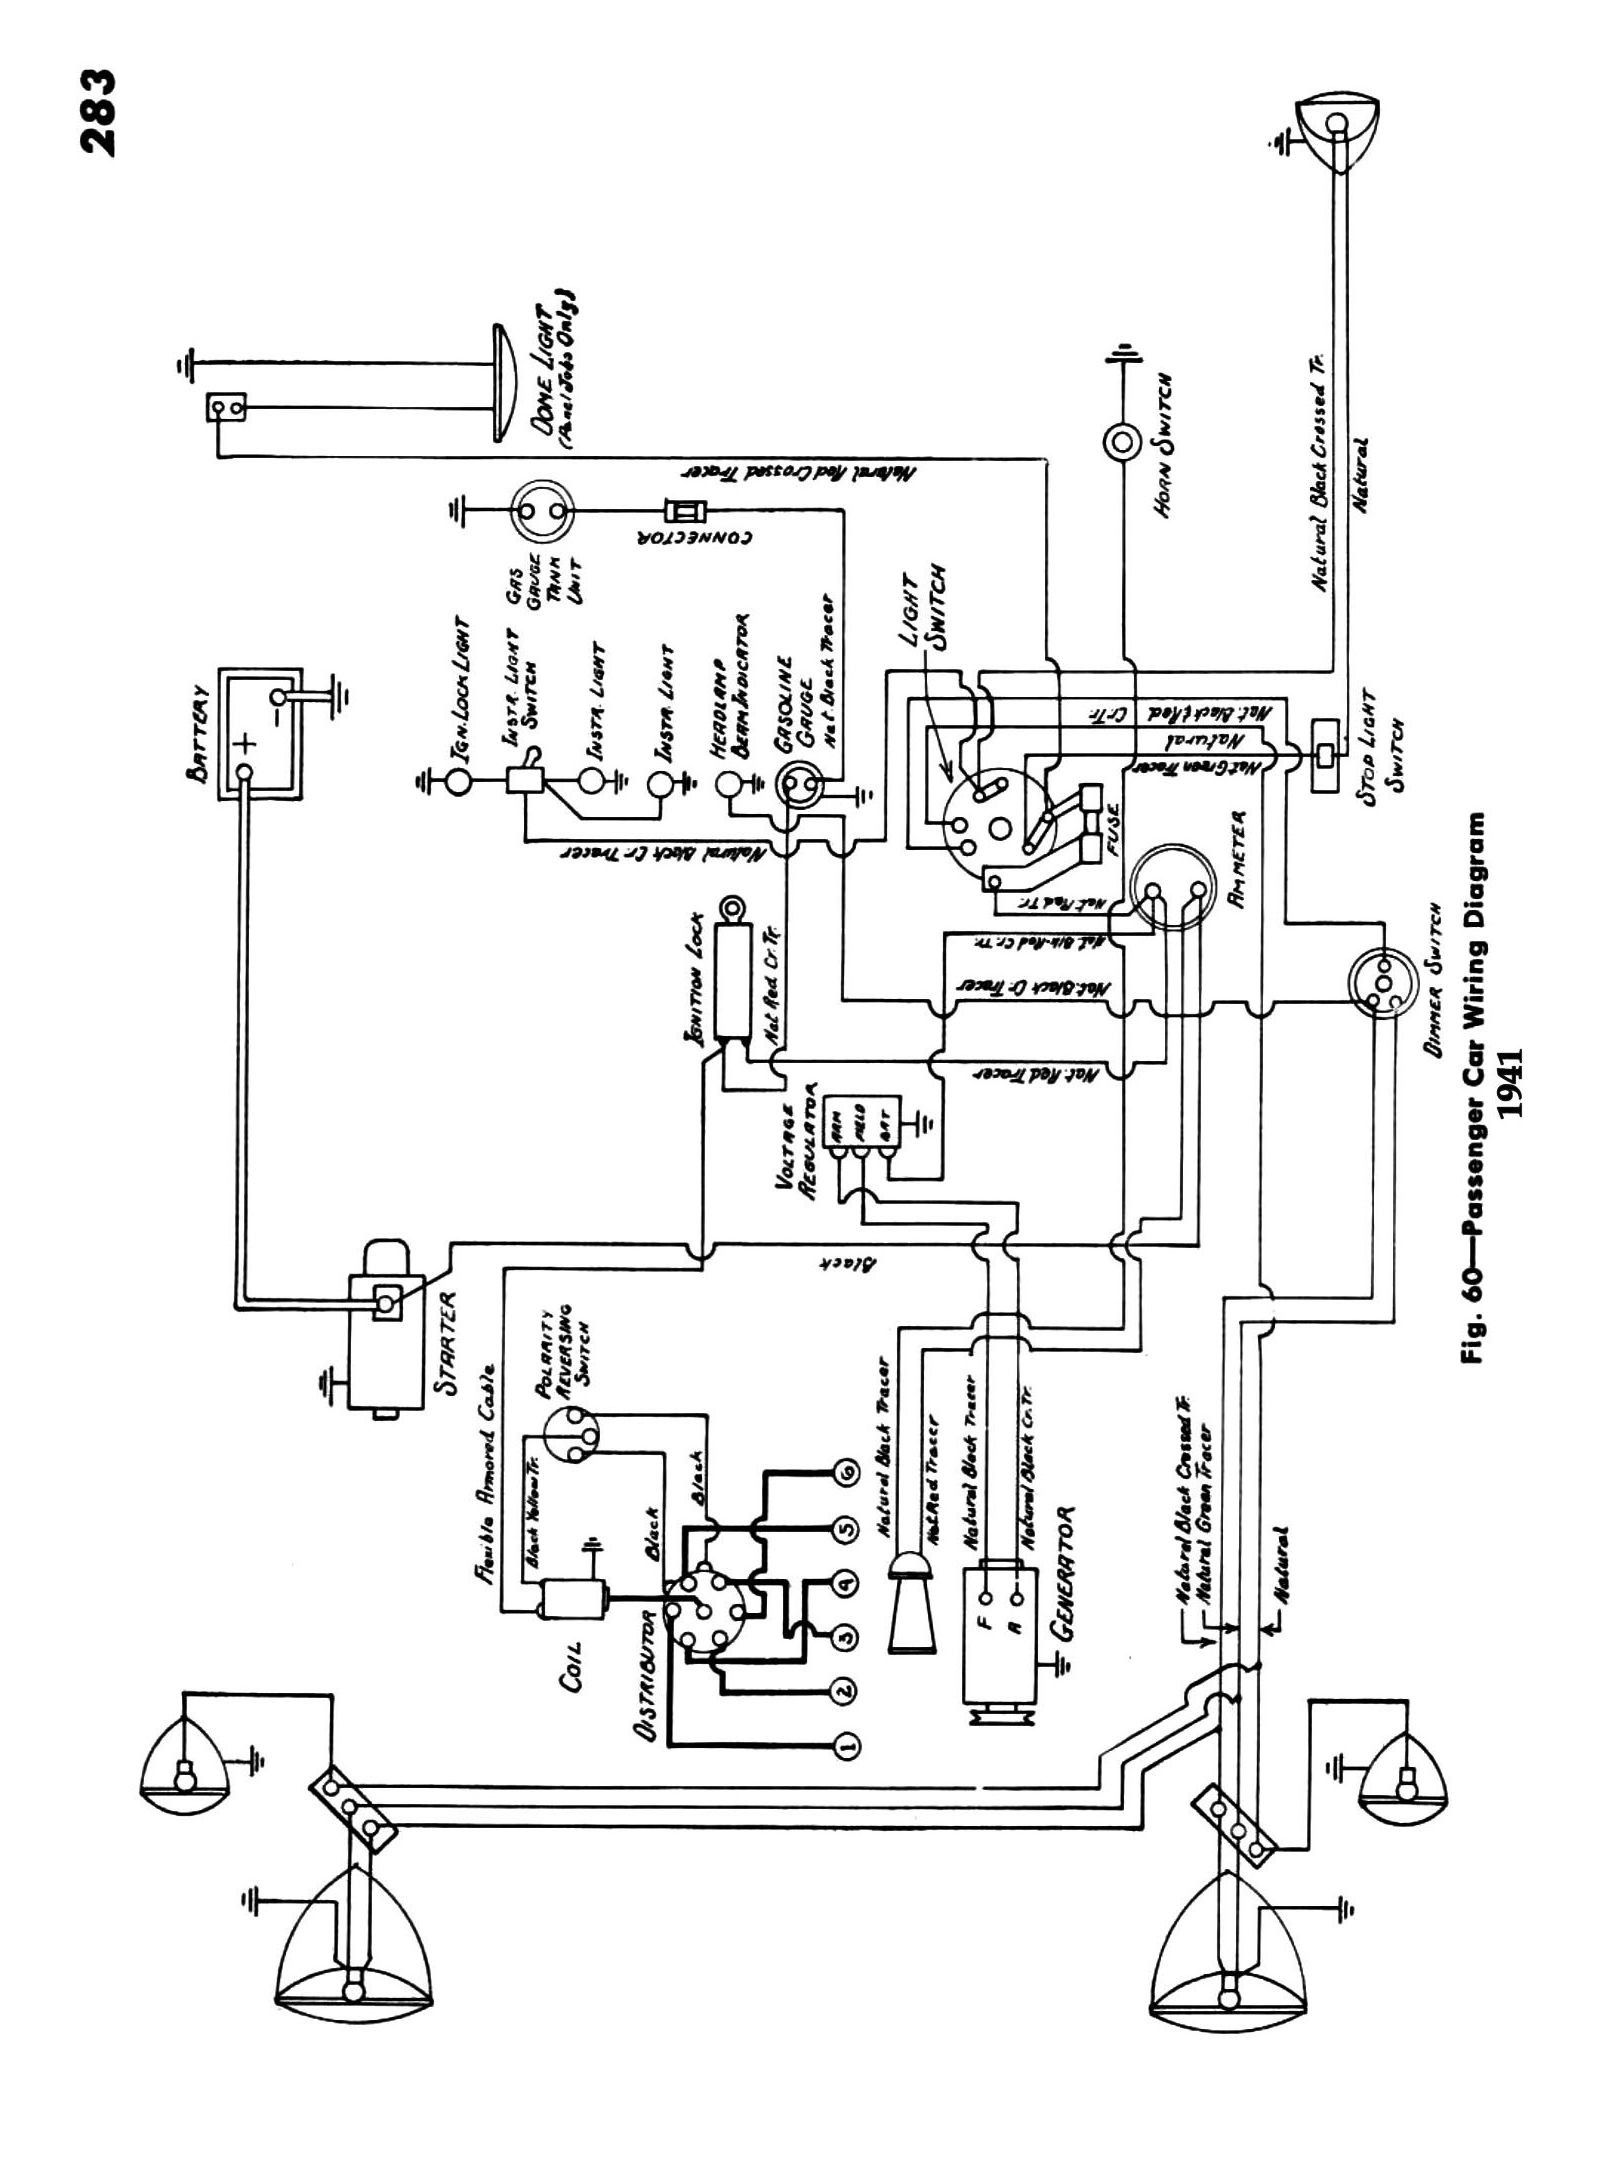 1987 chevy truck tbi wiring diagram